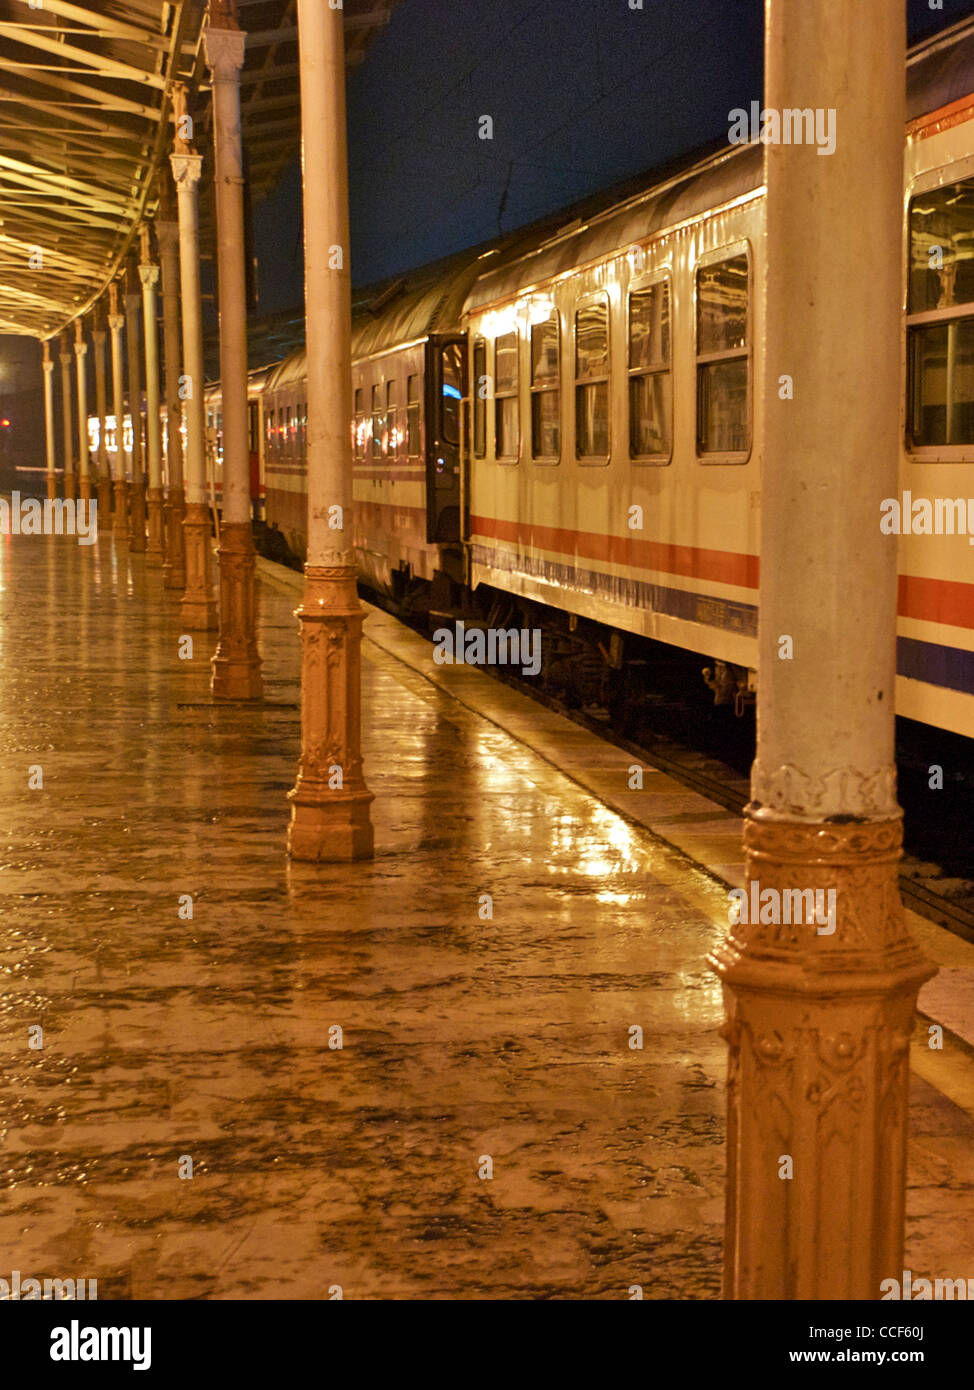 The platform and Istanbul to Belgrade train on Istanbul's Sirkeci railway station, Turkey Dec 2011 - Stock Image